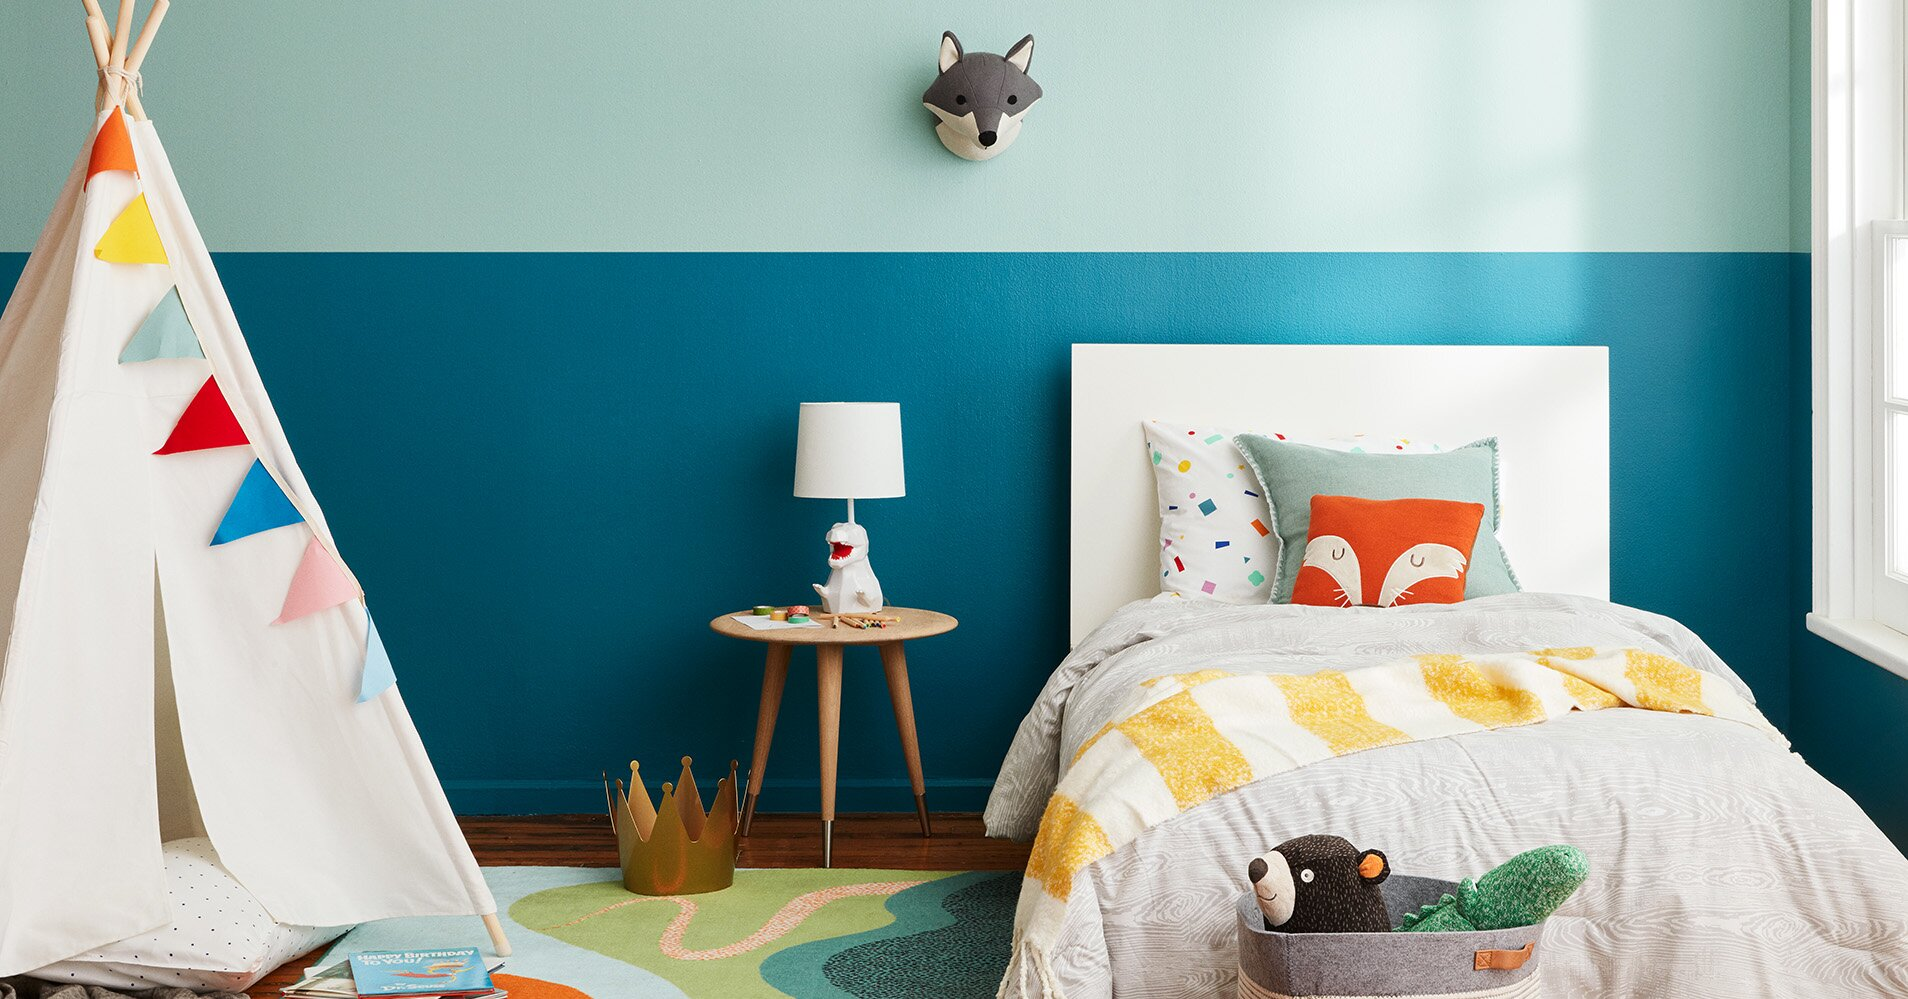 How To Choose A Youthful Paint Color For Your Child S Room That Still Complements The Rest Of Your Home Martha Stewart